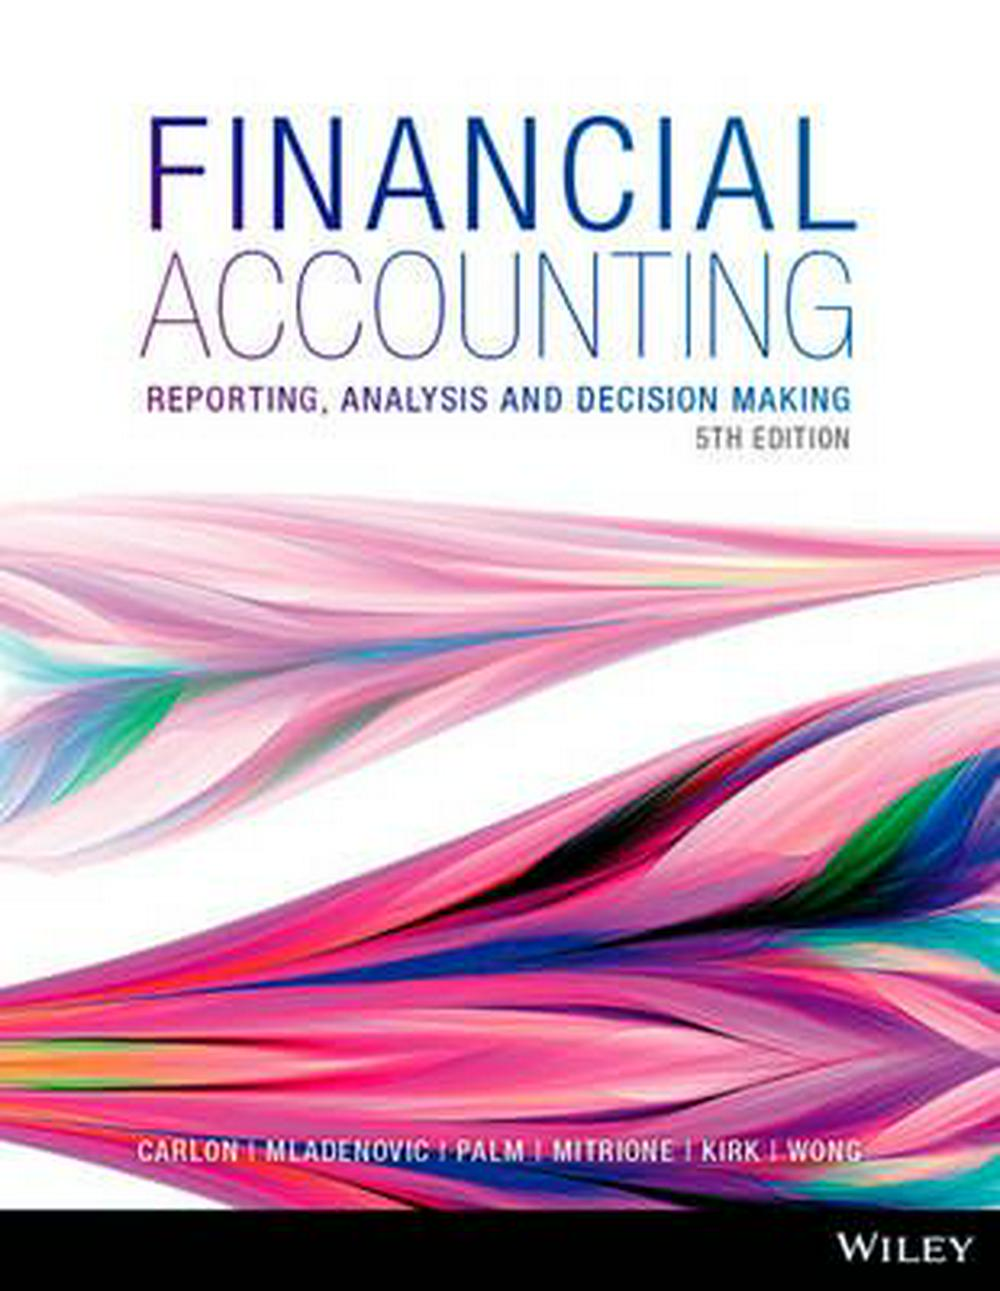 Financial AccountingReporting, Analysis and Decision Making 5E+wile...